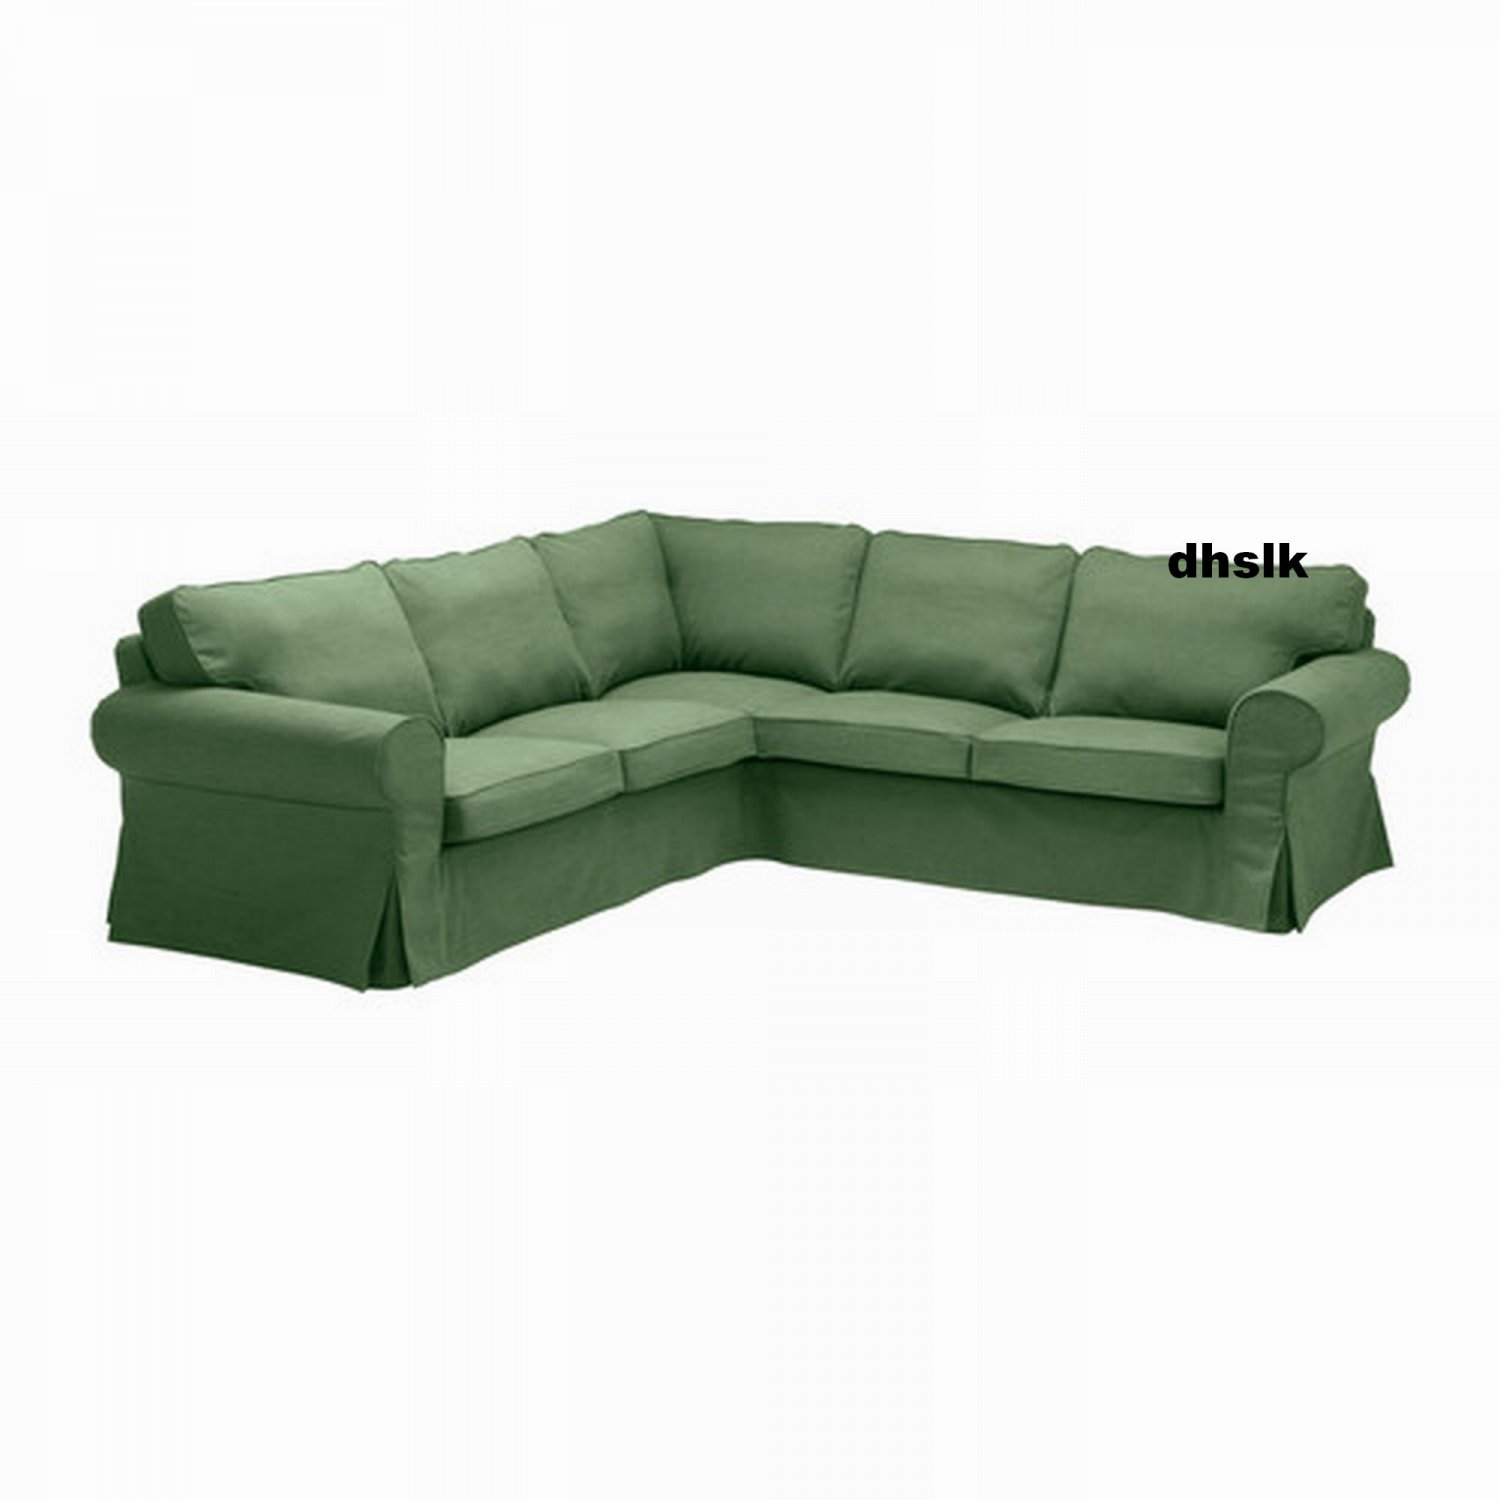 ikea ektorp 2 2 corner sofa cover slipcover svanby green. Black Bedroom Furniture Sets. Home Design Ideas